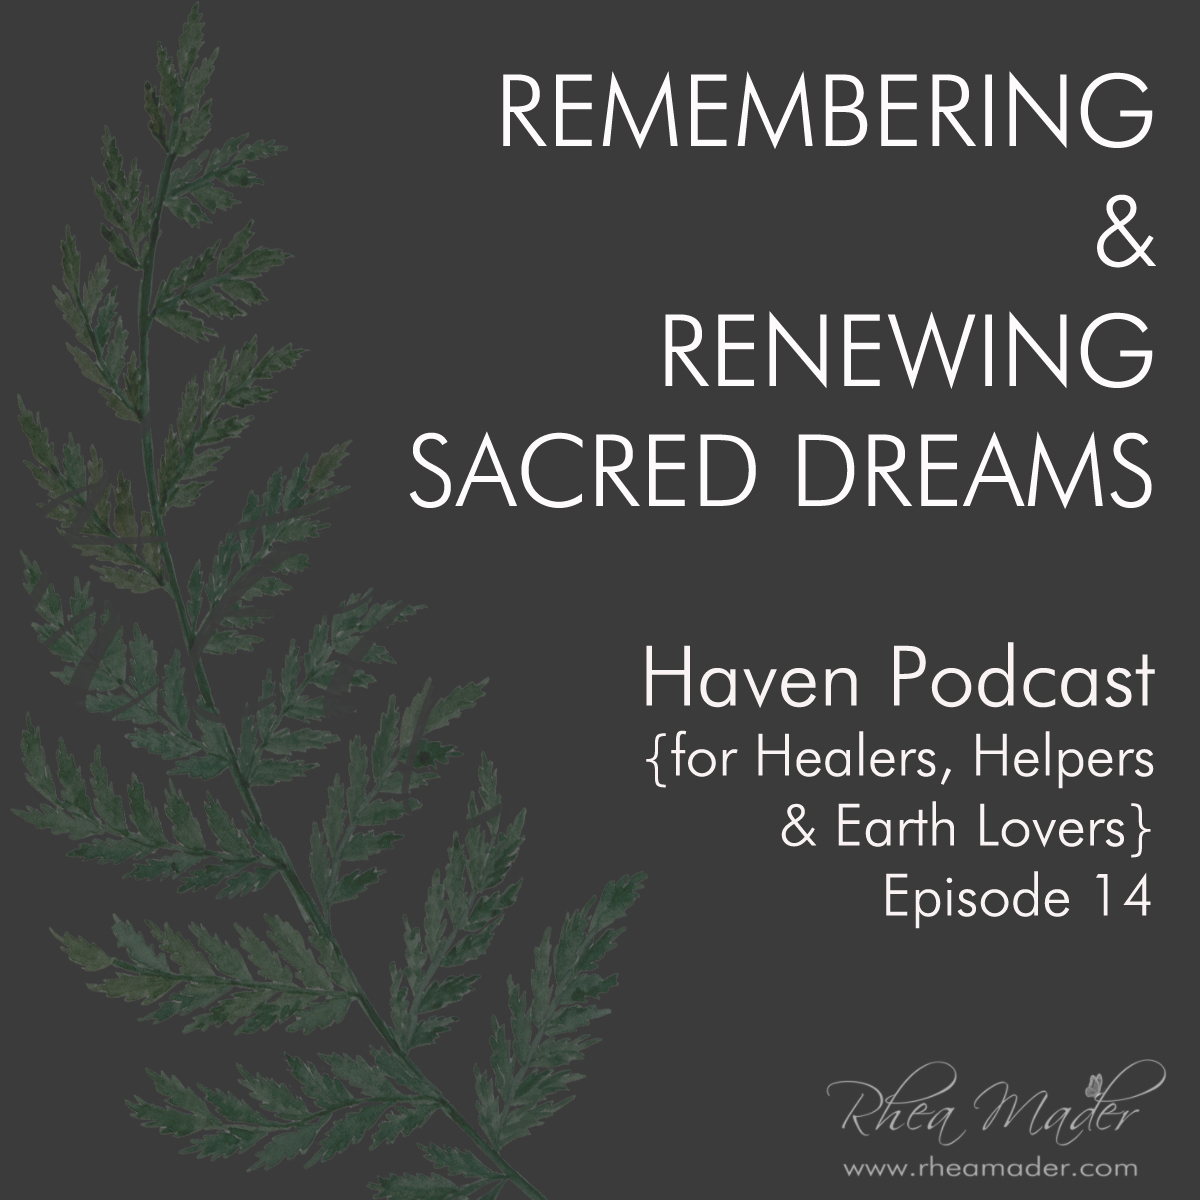 Remembering & Renewing Sacred Dreams